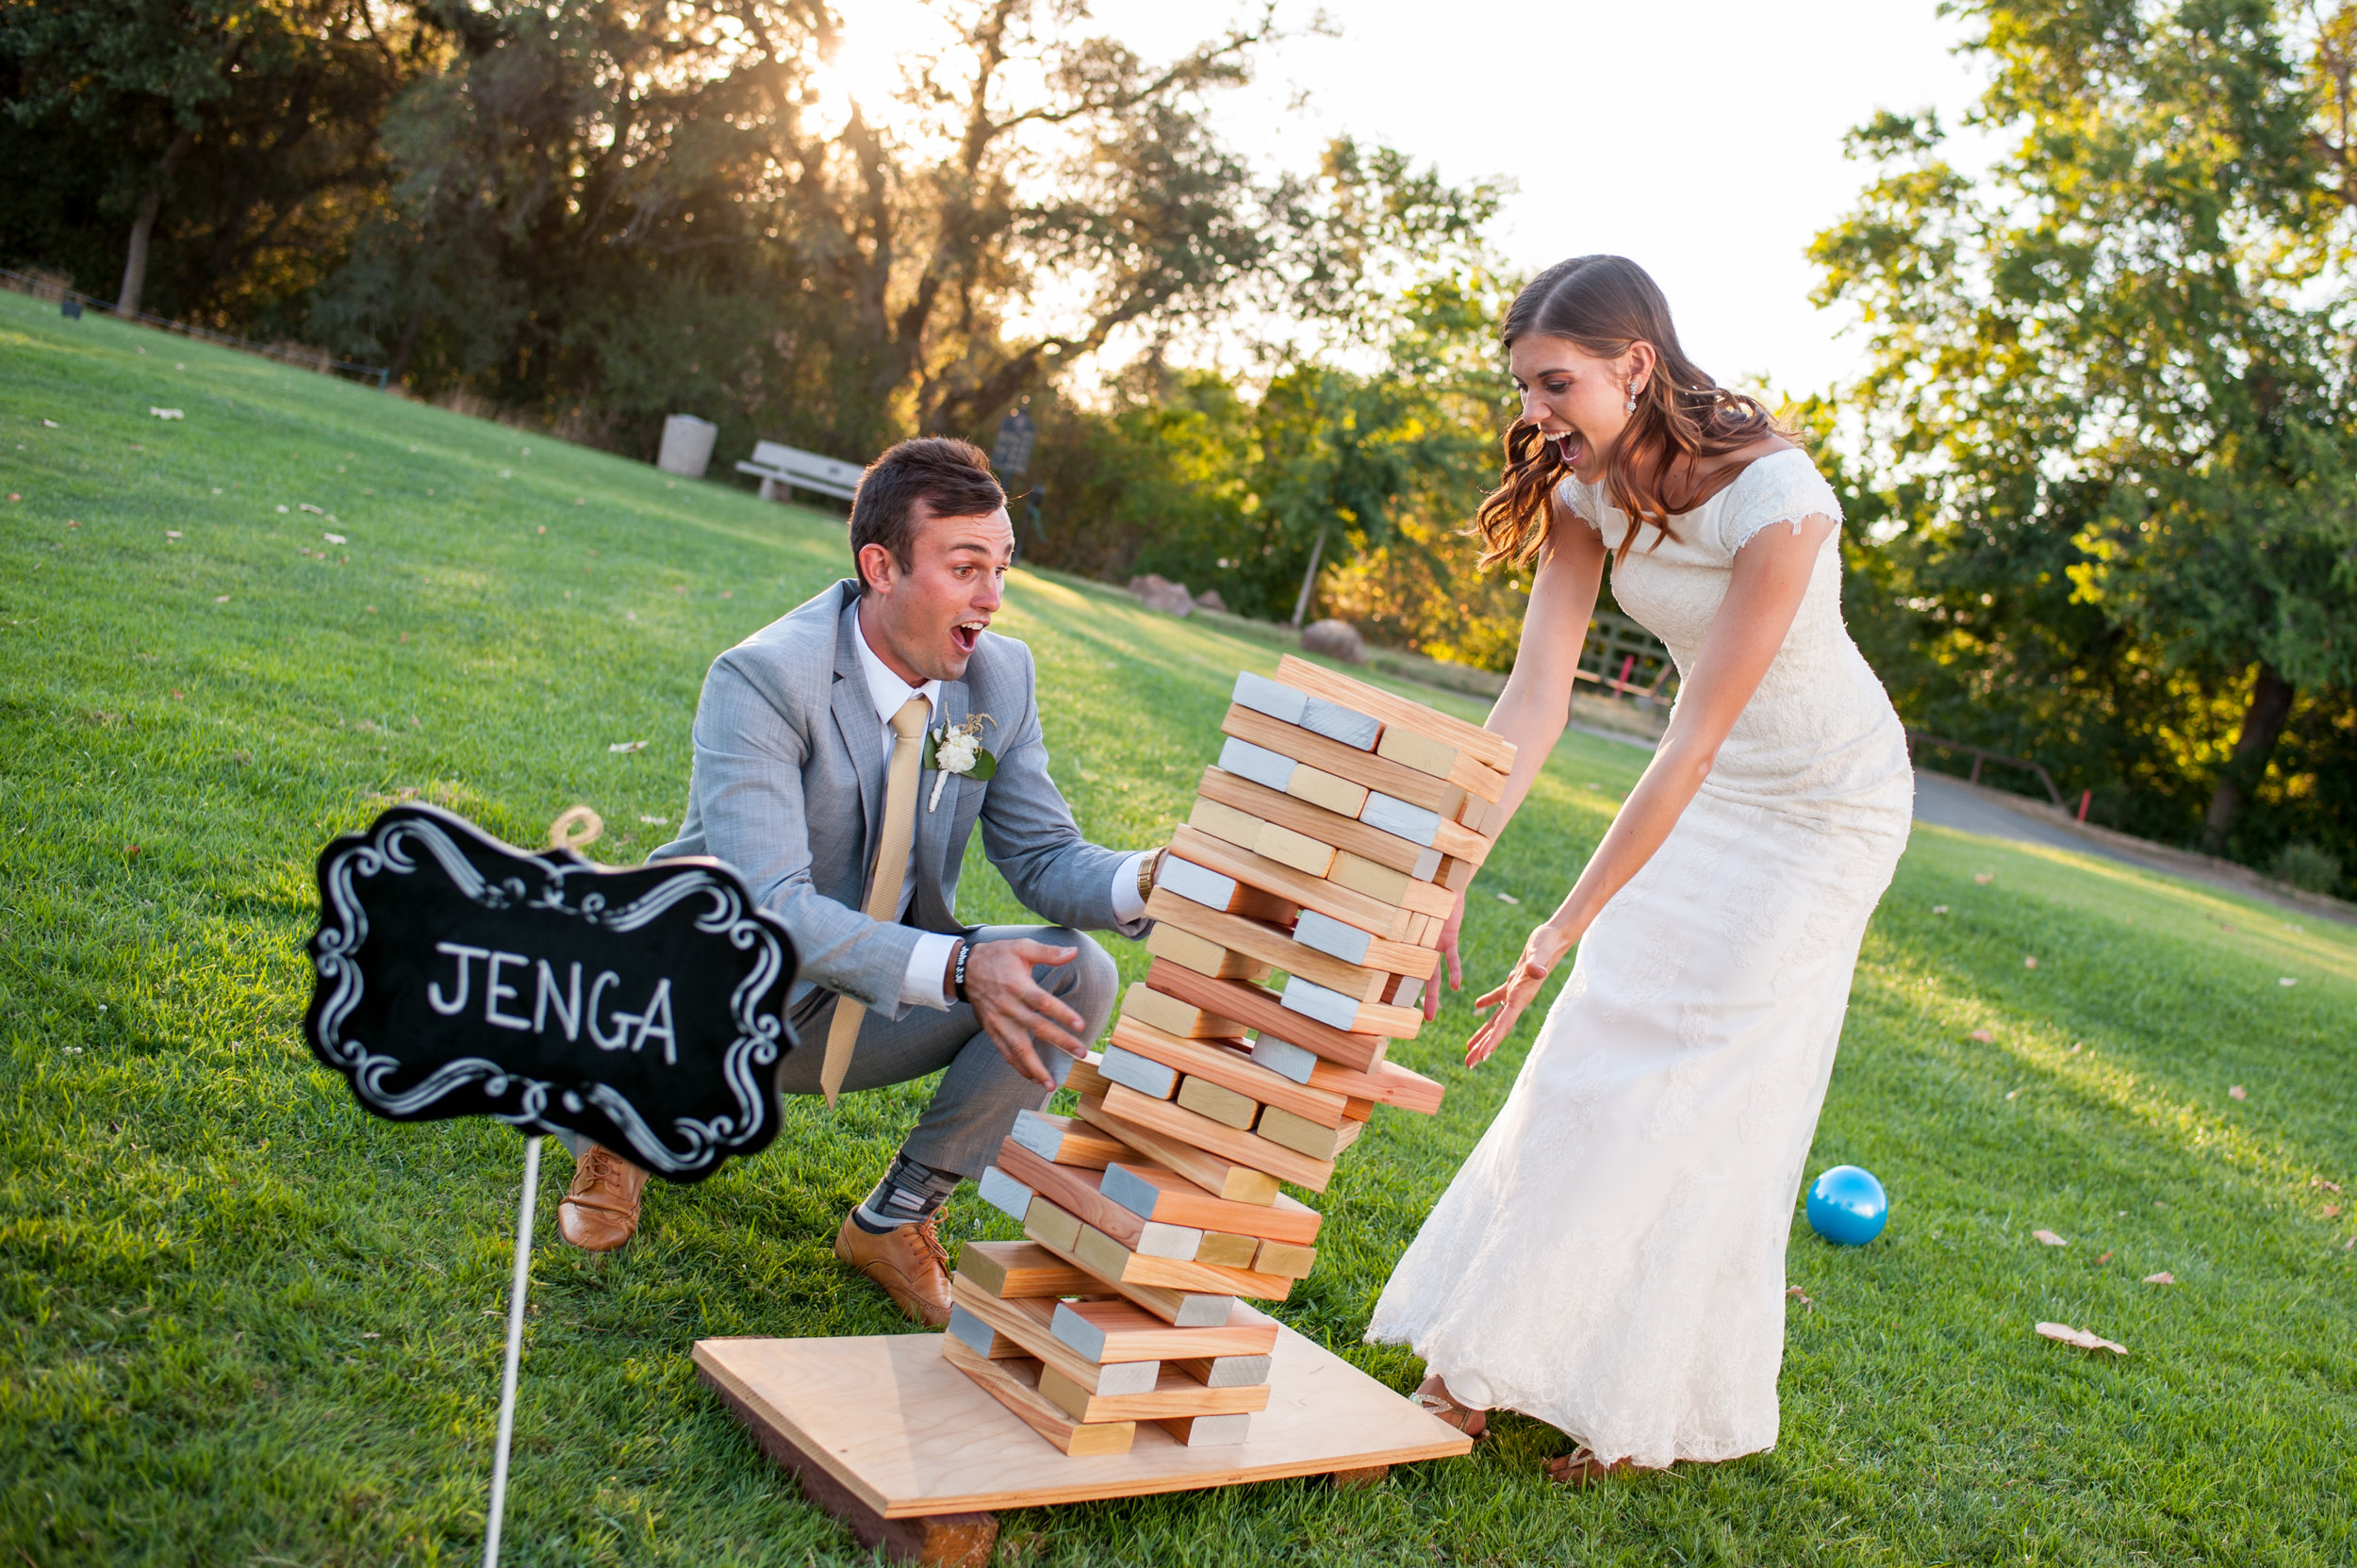 meghan-jonah-024-haggin-oaks-golf-course-sacramento-engagement-wedding-photographer-katherine-nicole-photography.JPG